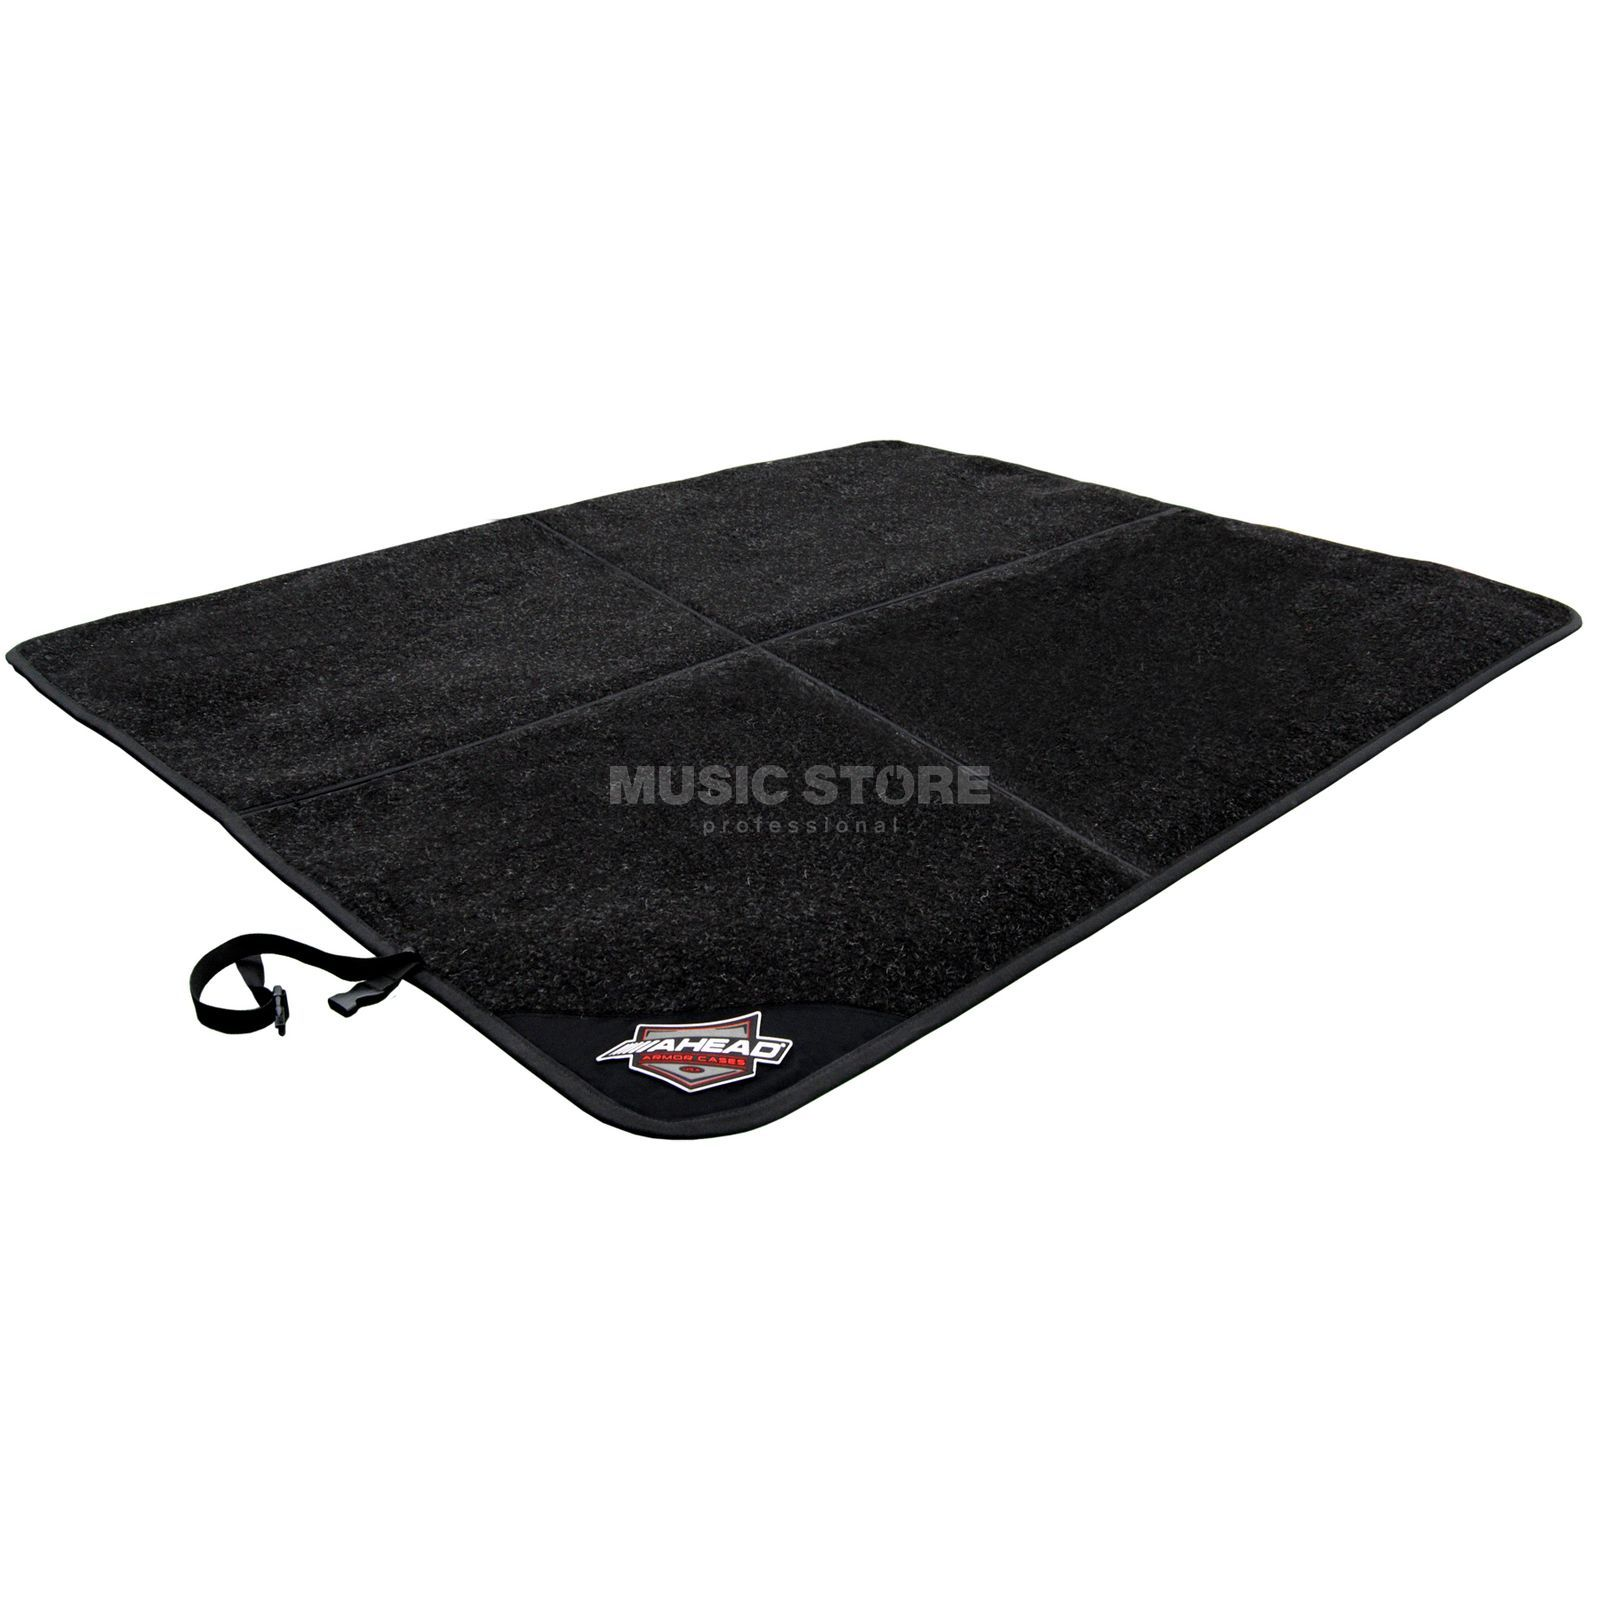 Ahead Armor Cases Drum Teppich AA9014, Limited Edition, 1,40 x 1,20 m Produktbild